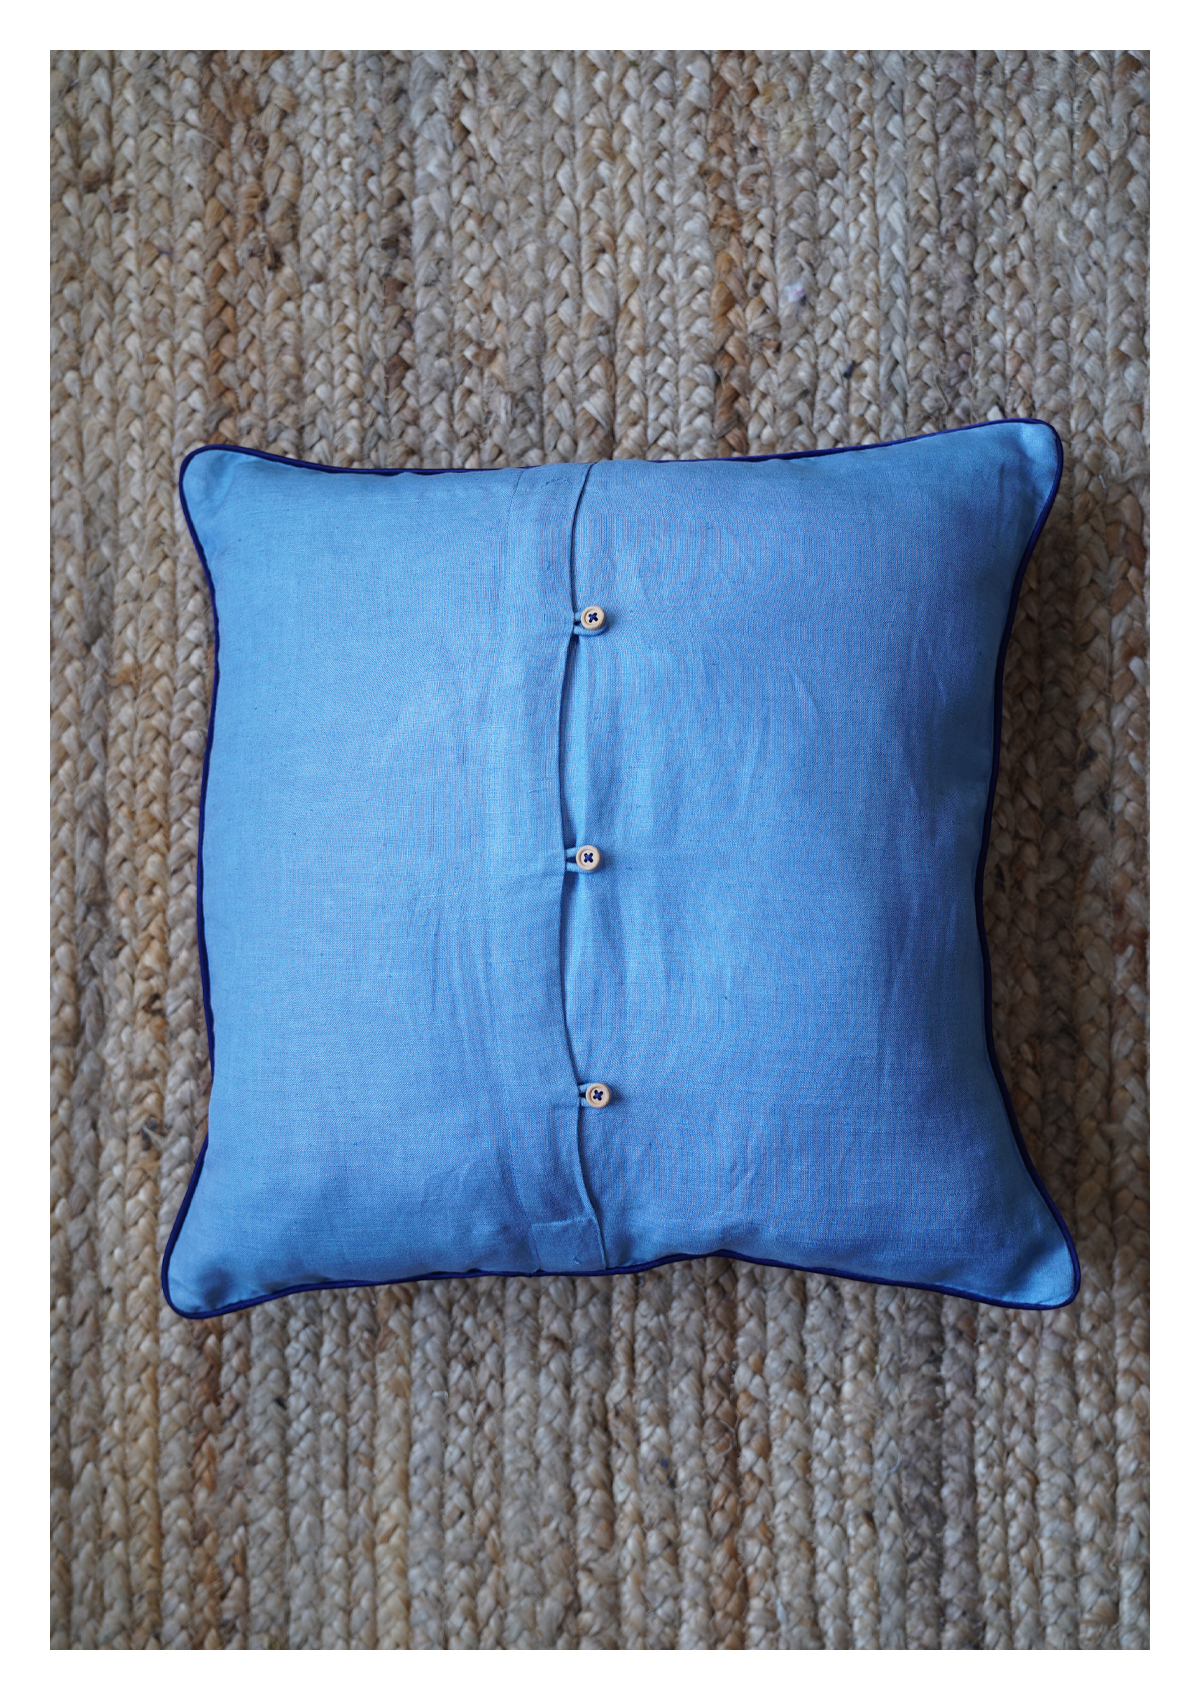 Starling Blue Linen Cushion Cover